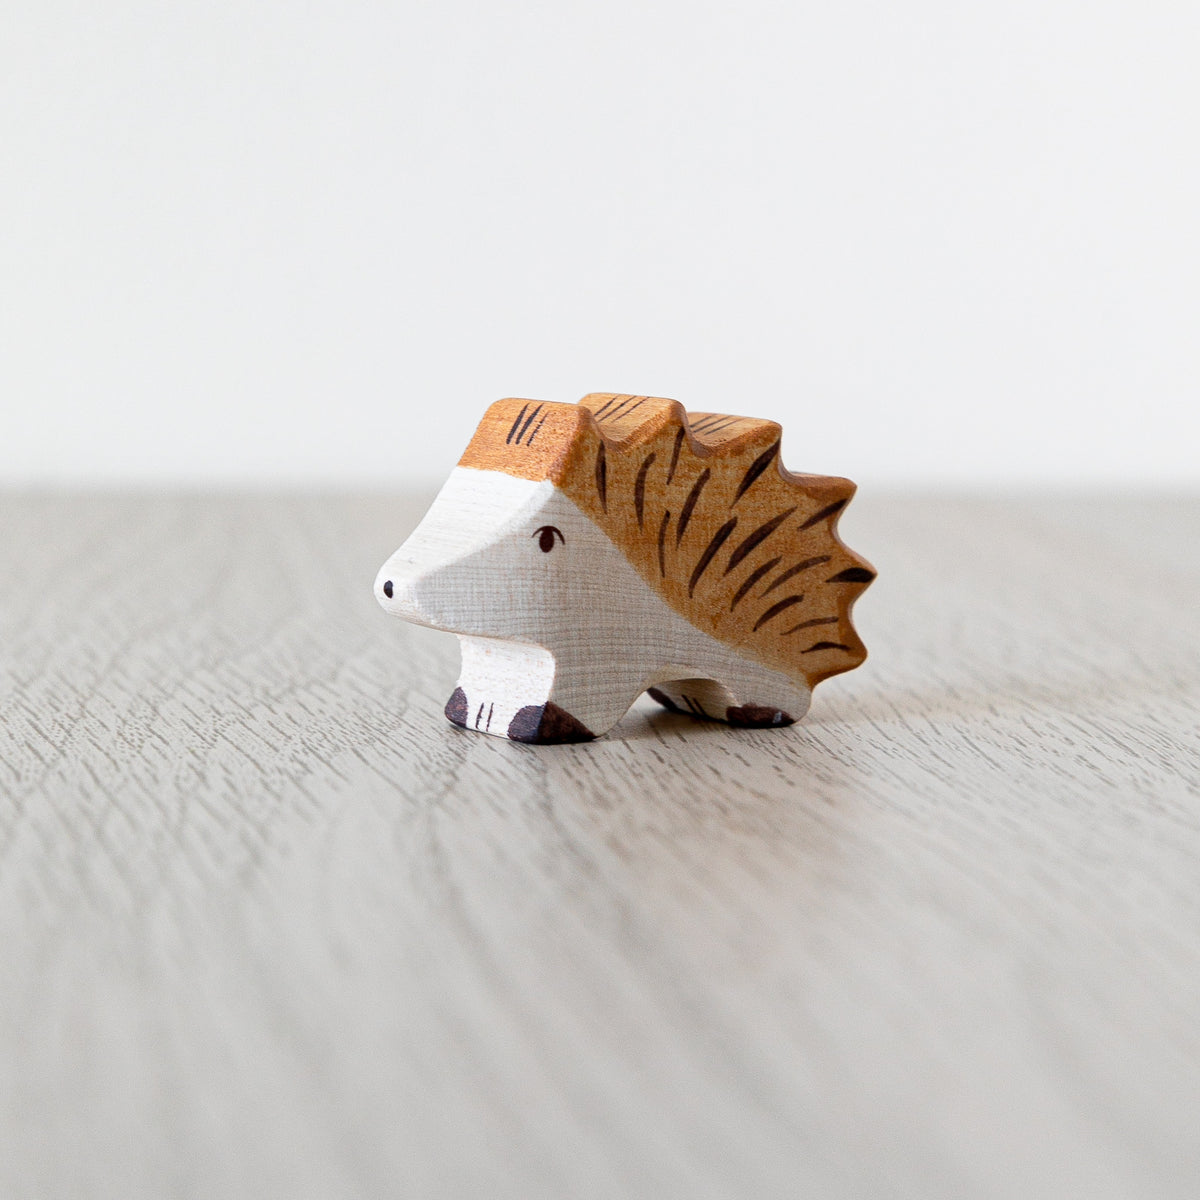 Holztiger Wooden Animal - Hedgehog